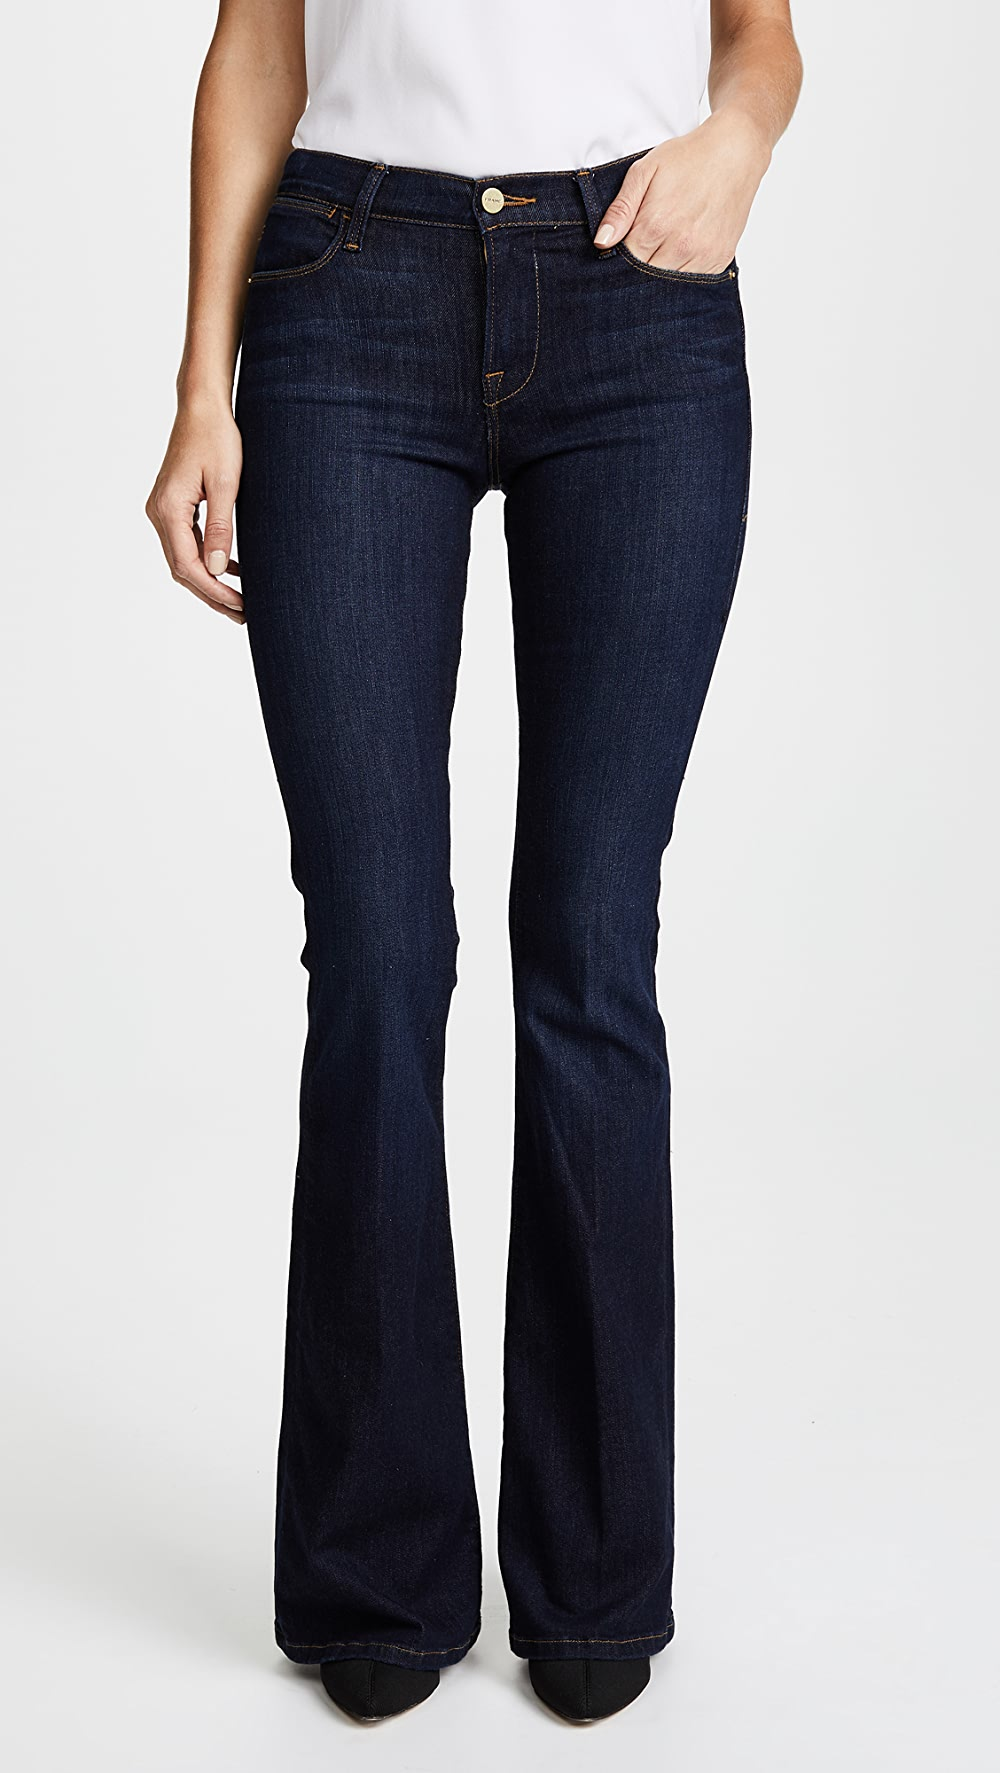 NWT FRAME Le High Flare Skinny Flared Fit Color Sutherland Size 24